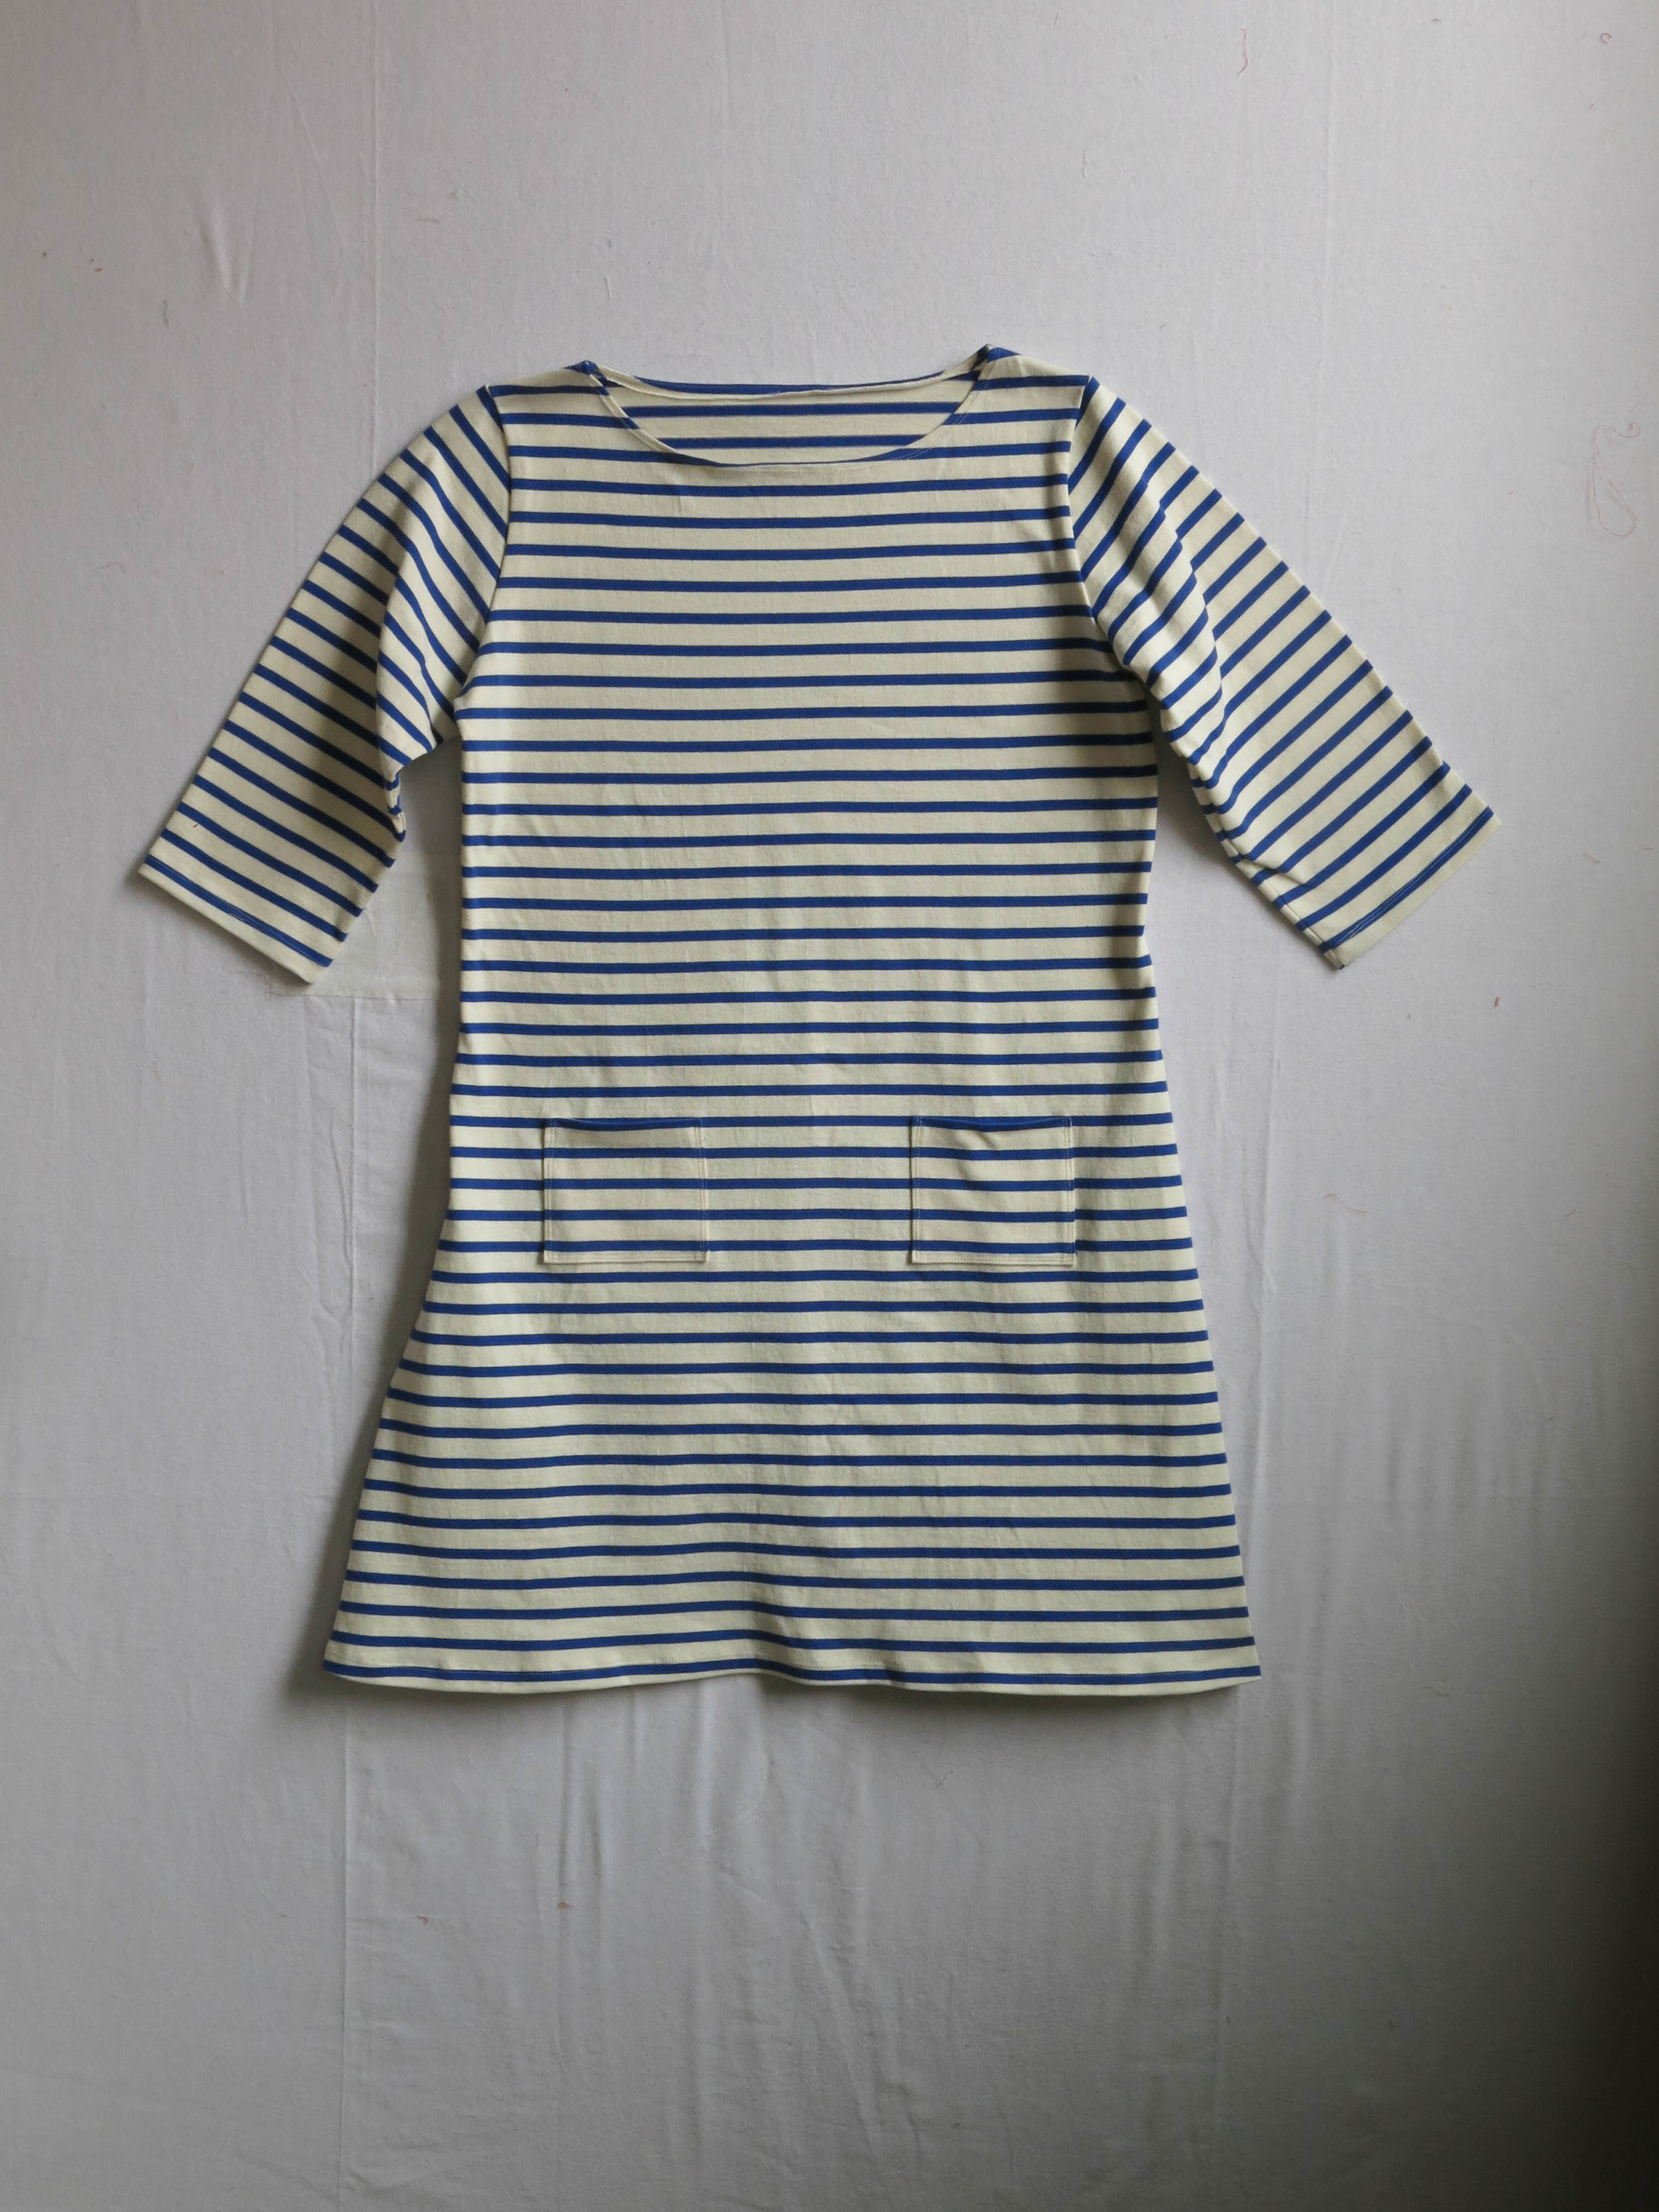 A Coco dress, pattern by Tilly and the Buttons, in heavy-weight cotton jersey bought at Mood Fabrics last Fall.